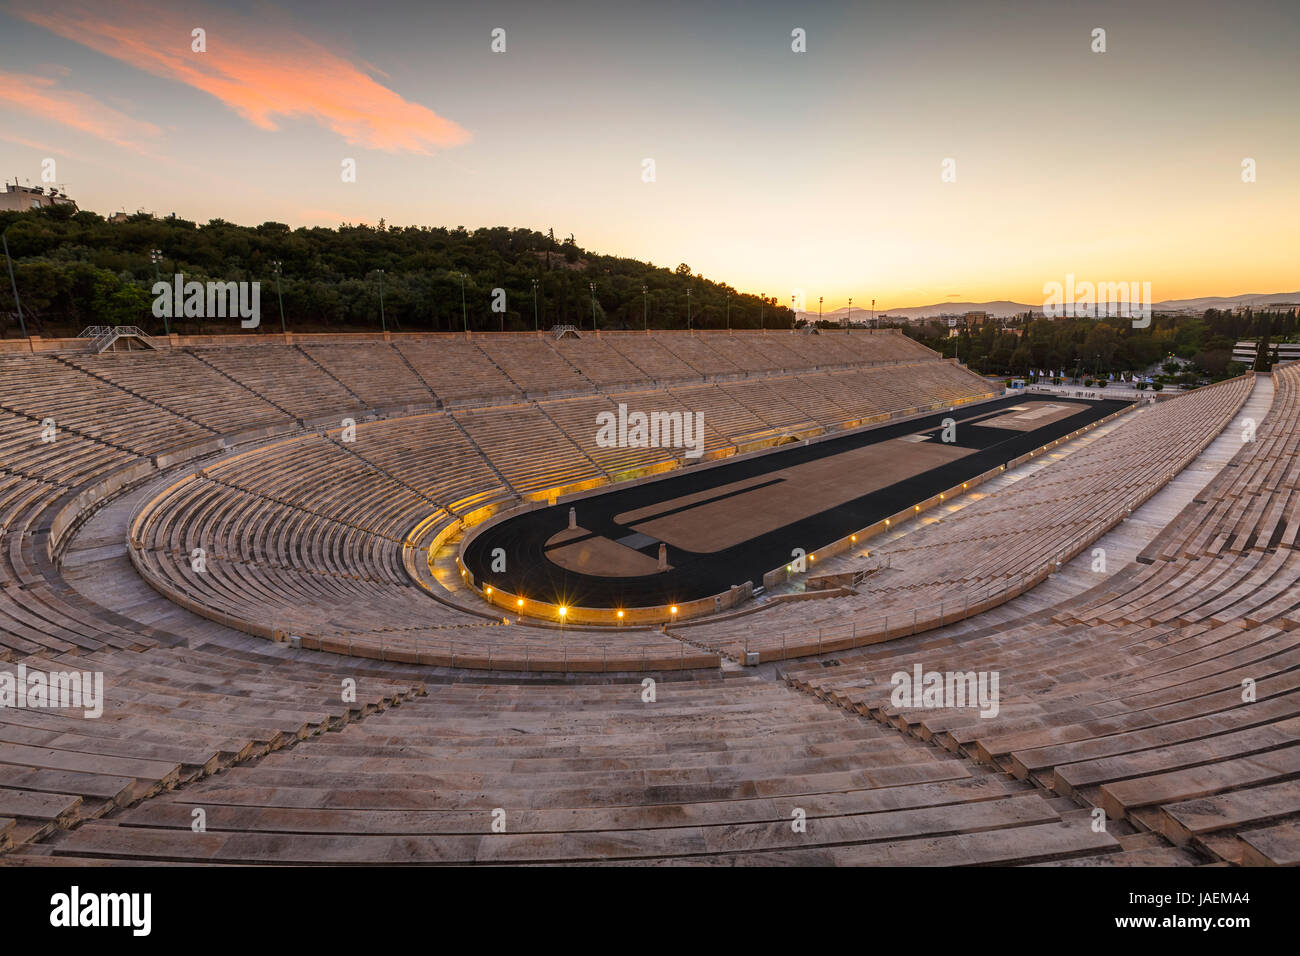 First modern Olympic stadium in city of Athens, Greece. - Stock Image